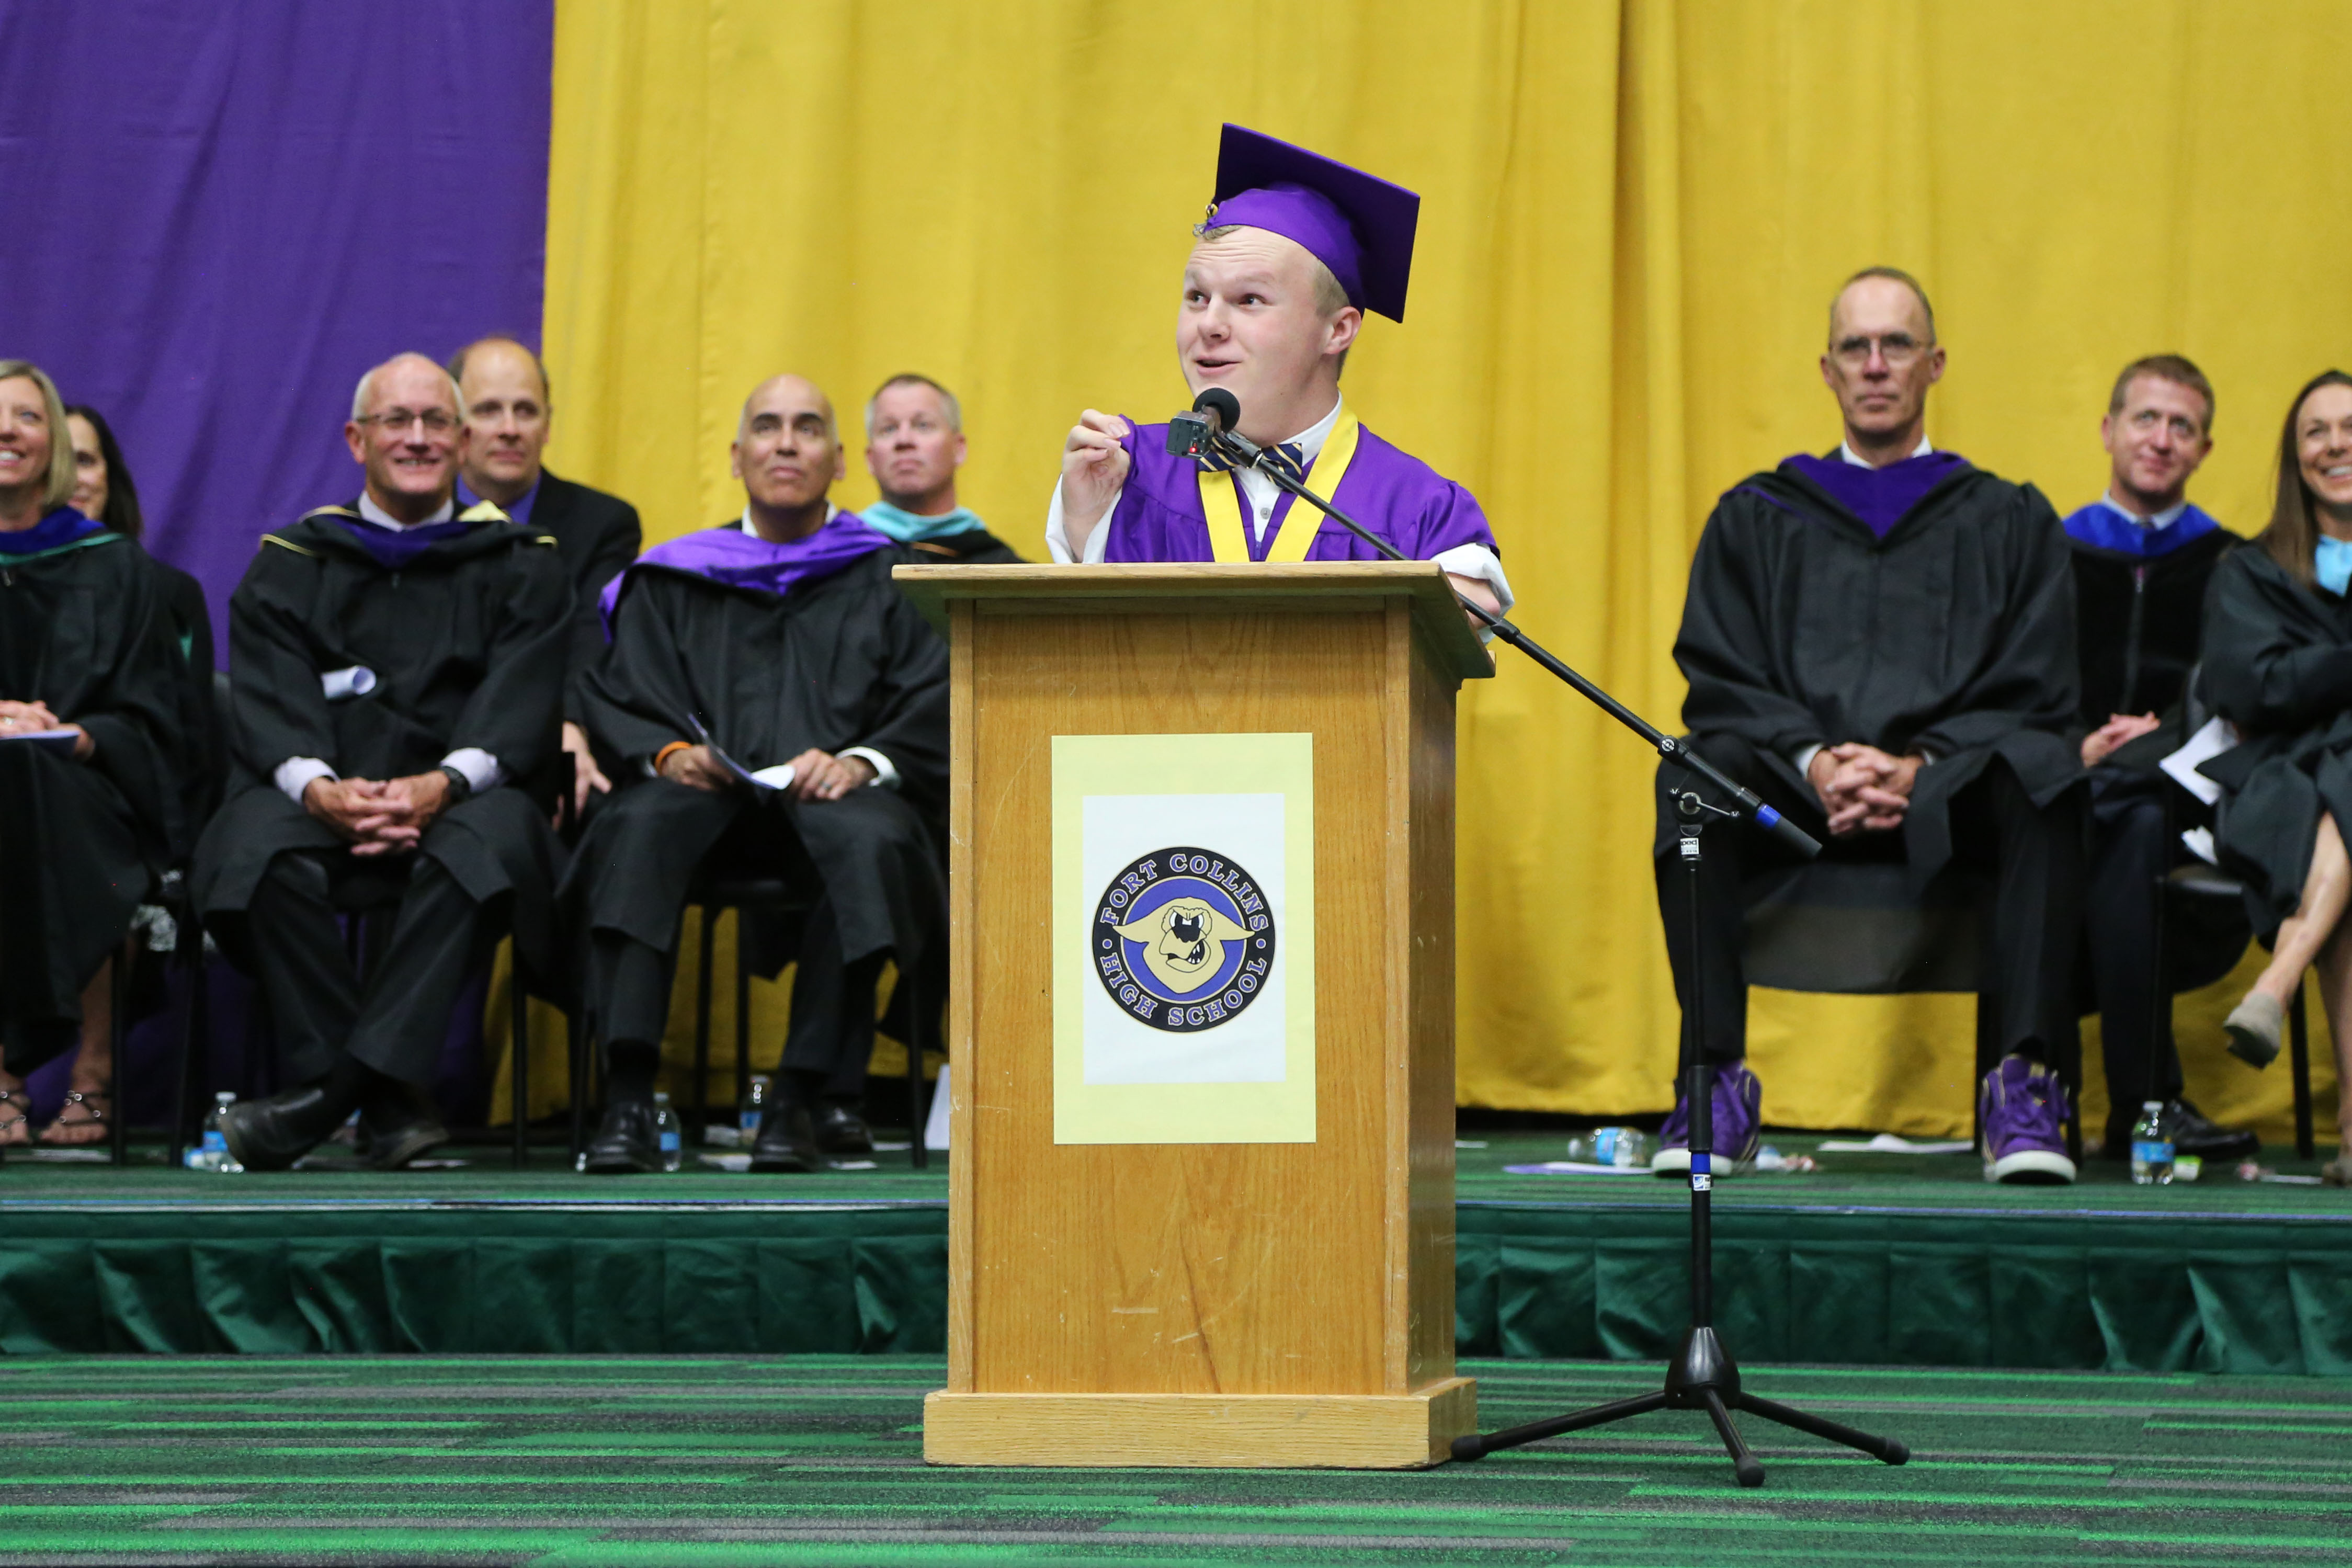 A FCHS graduate gives a speech.